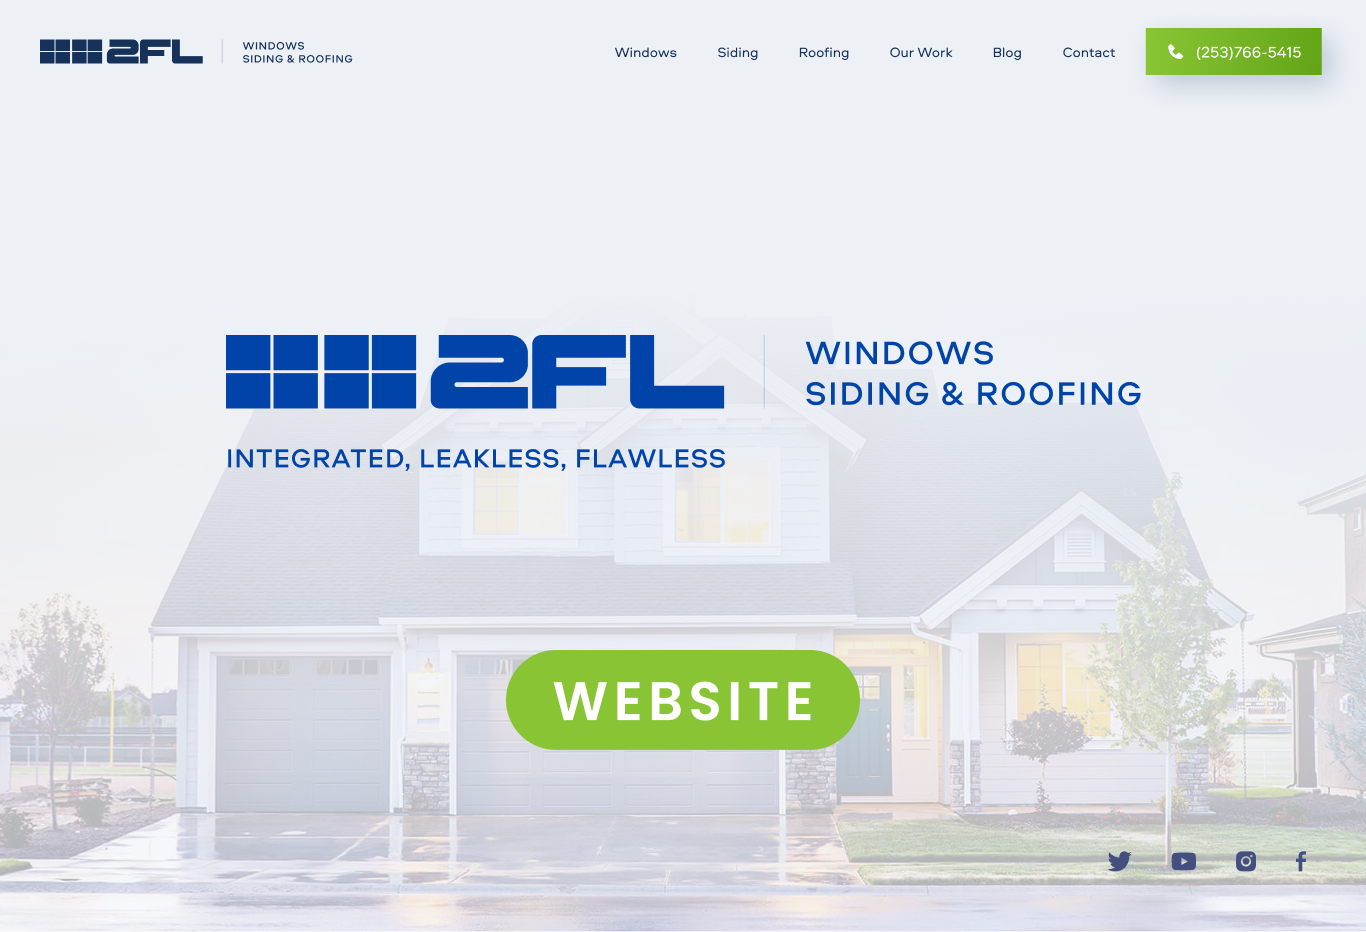 2FL Windows, Siding & Roofing Website